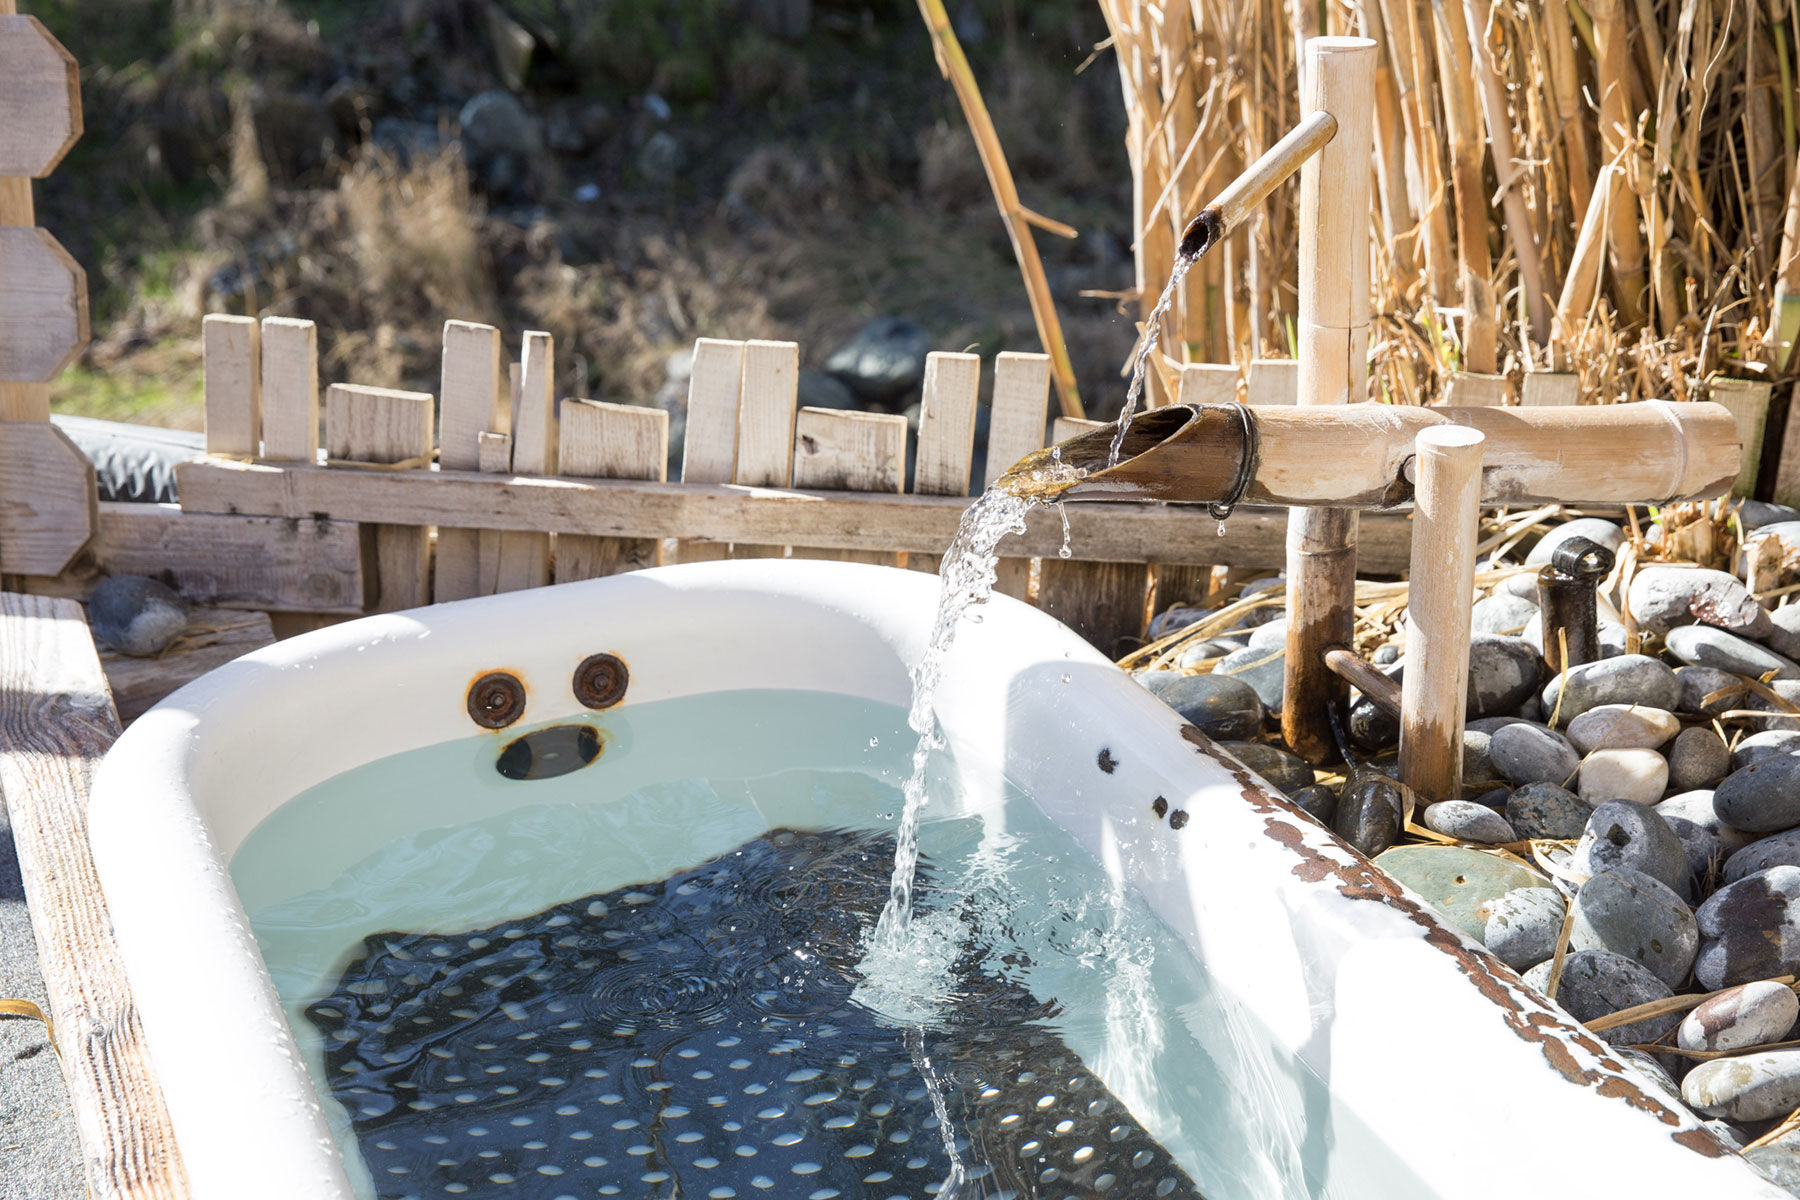 an outdoor tub at Wilbur Hot Springs